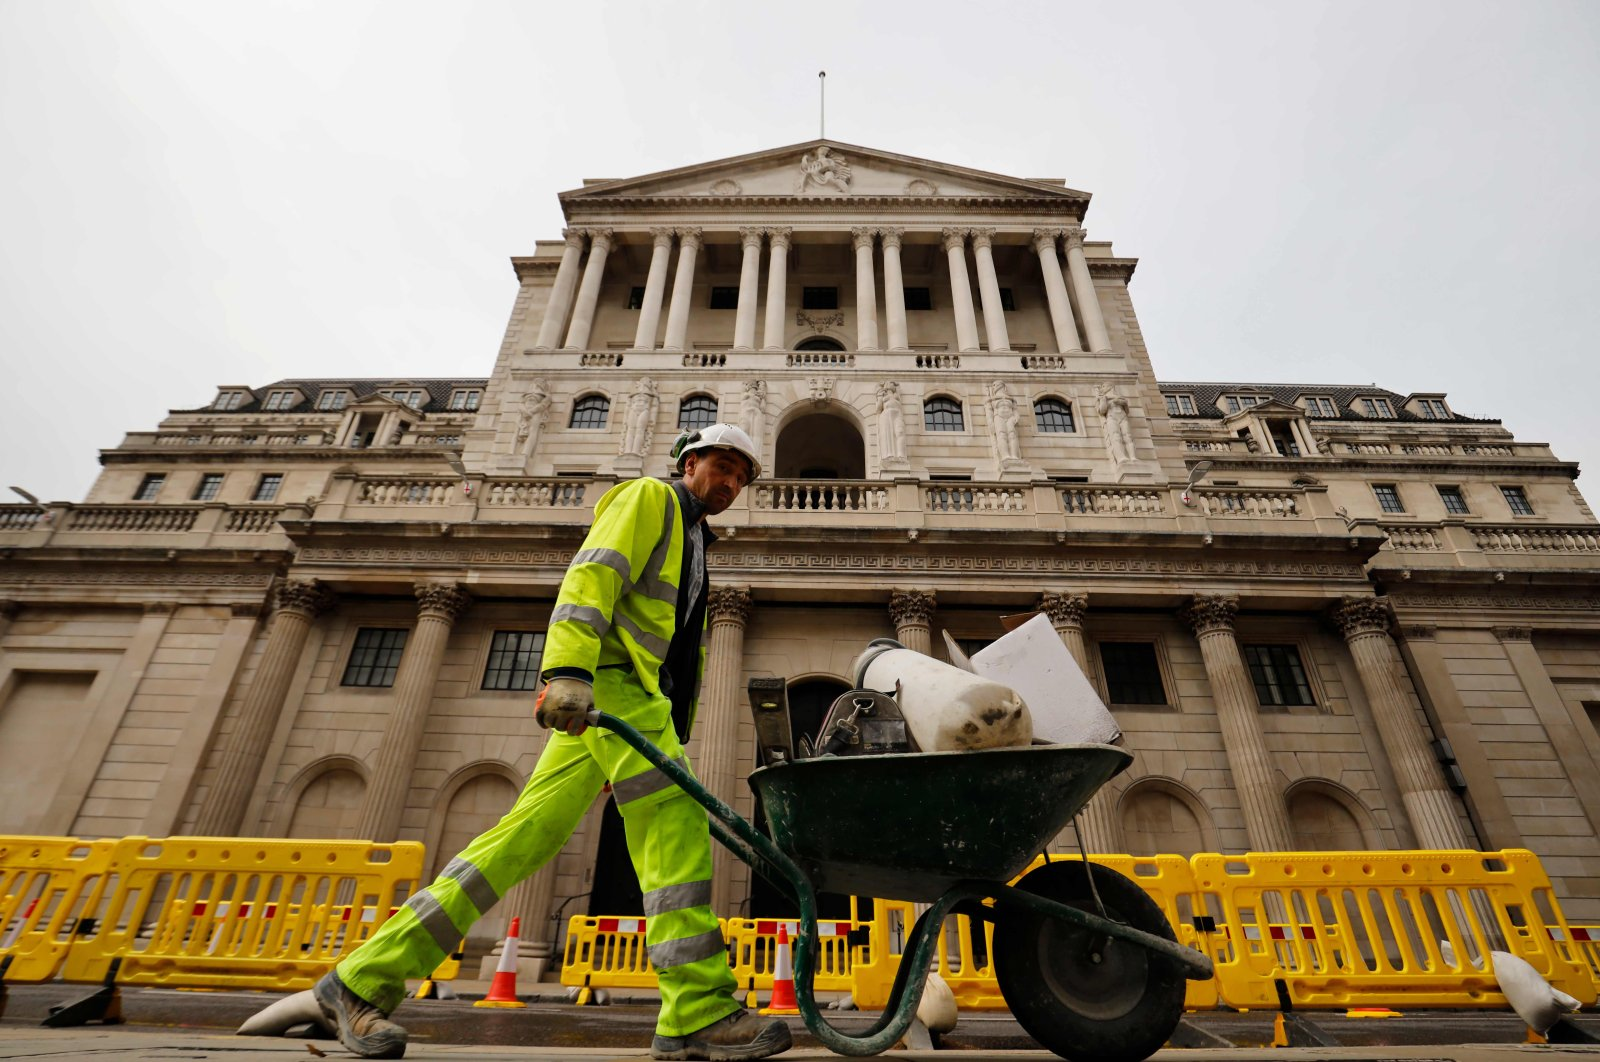 A worker pushes a wheelbarrow of debris outside the Bank of England in London, June 17, 2020. (AFP)